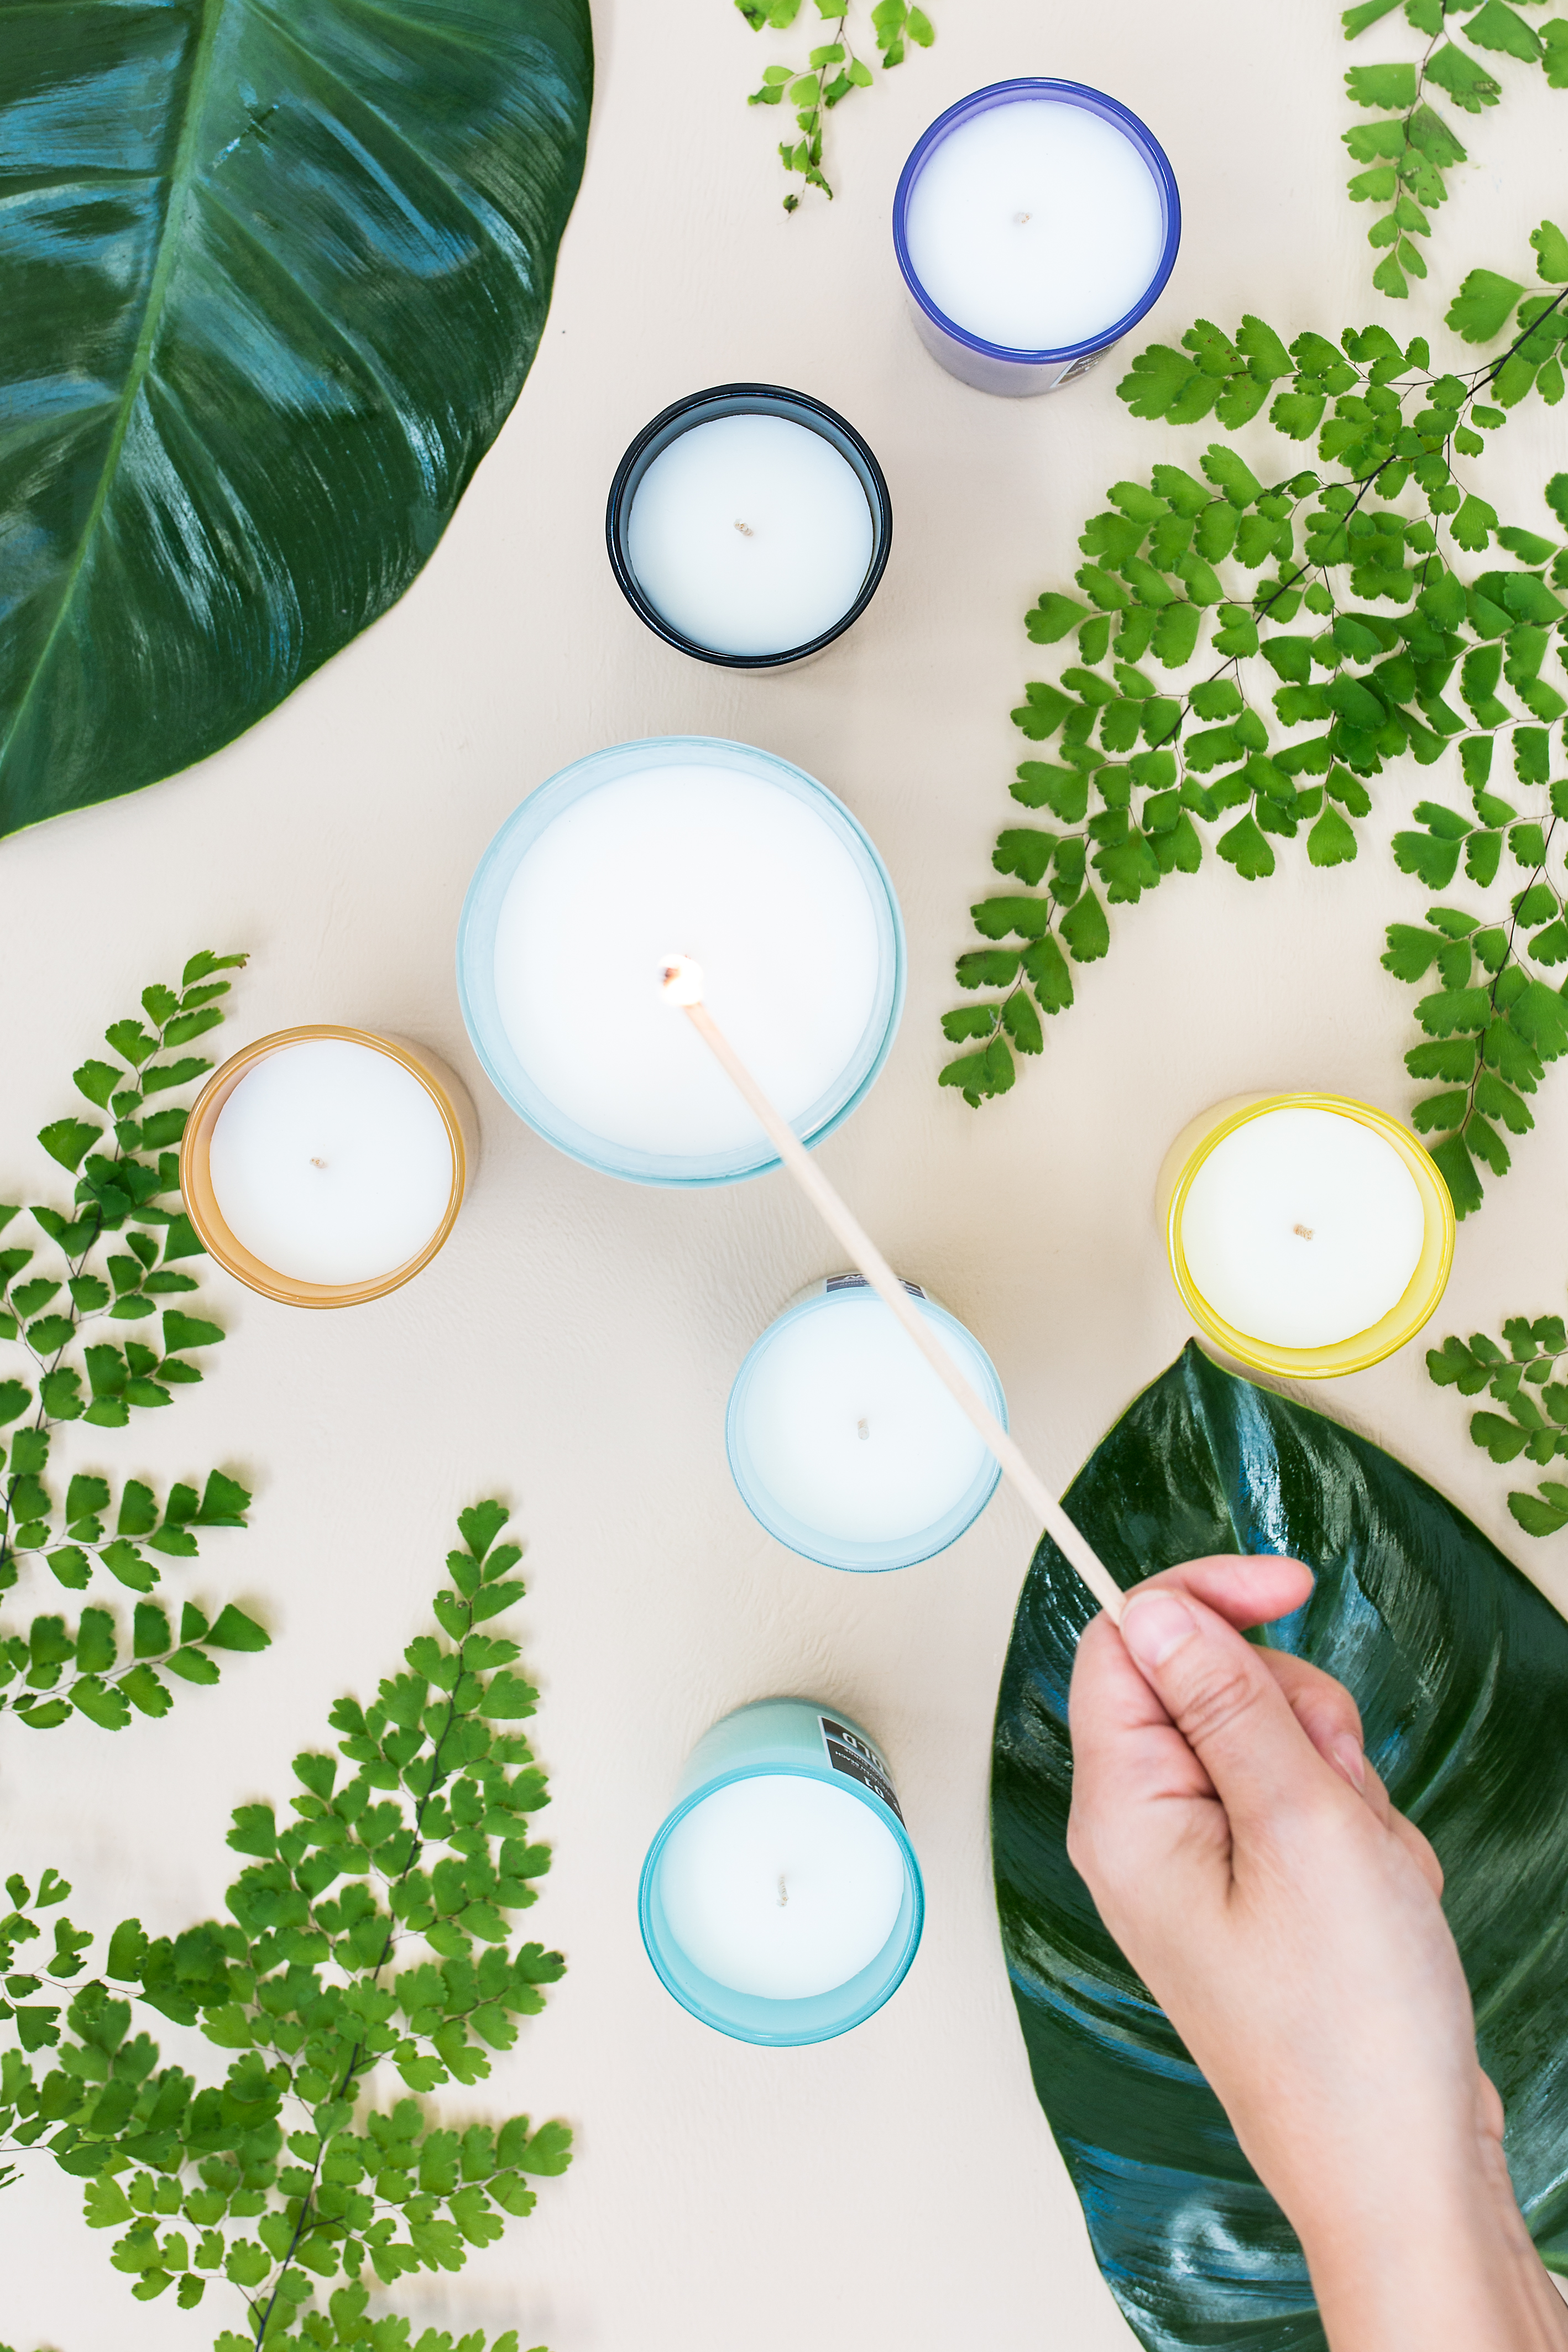 I am one of the co-founders of Noelle Australia, a natural skincare, candle and fragrance brand that aims to connect people to the Natural Luxury of Australia. Here is one of our very first images curated to explore the clean, simple and uncluttered atmosphere we all could re-create and enjoy at home.